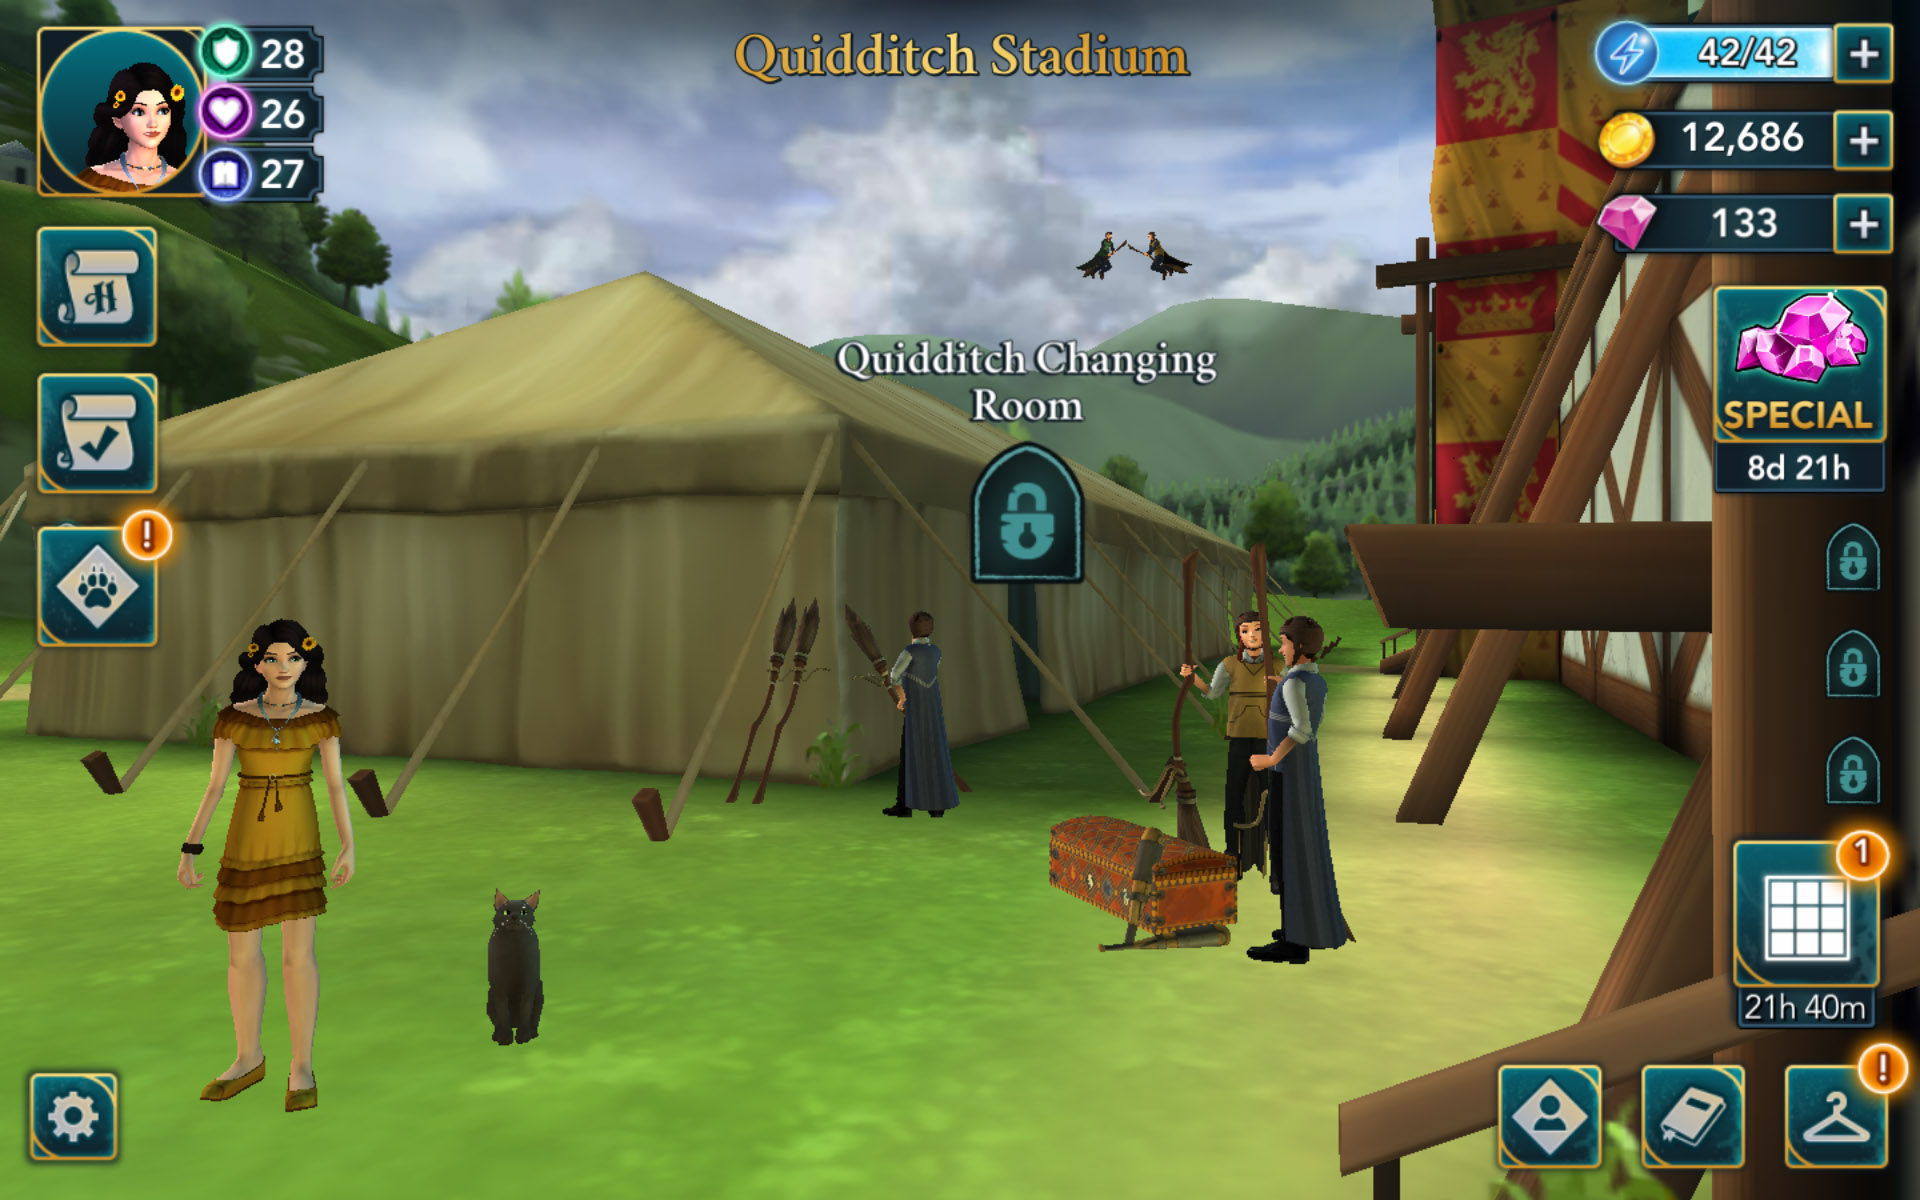 """A view of the Quidditch Changing Room is seen in this screenshot from """"Harry Potter: Hogwarts Mystery""""."""